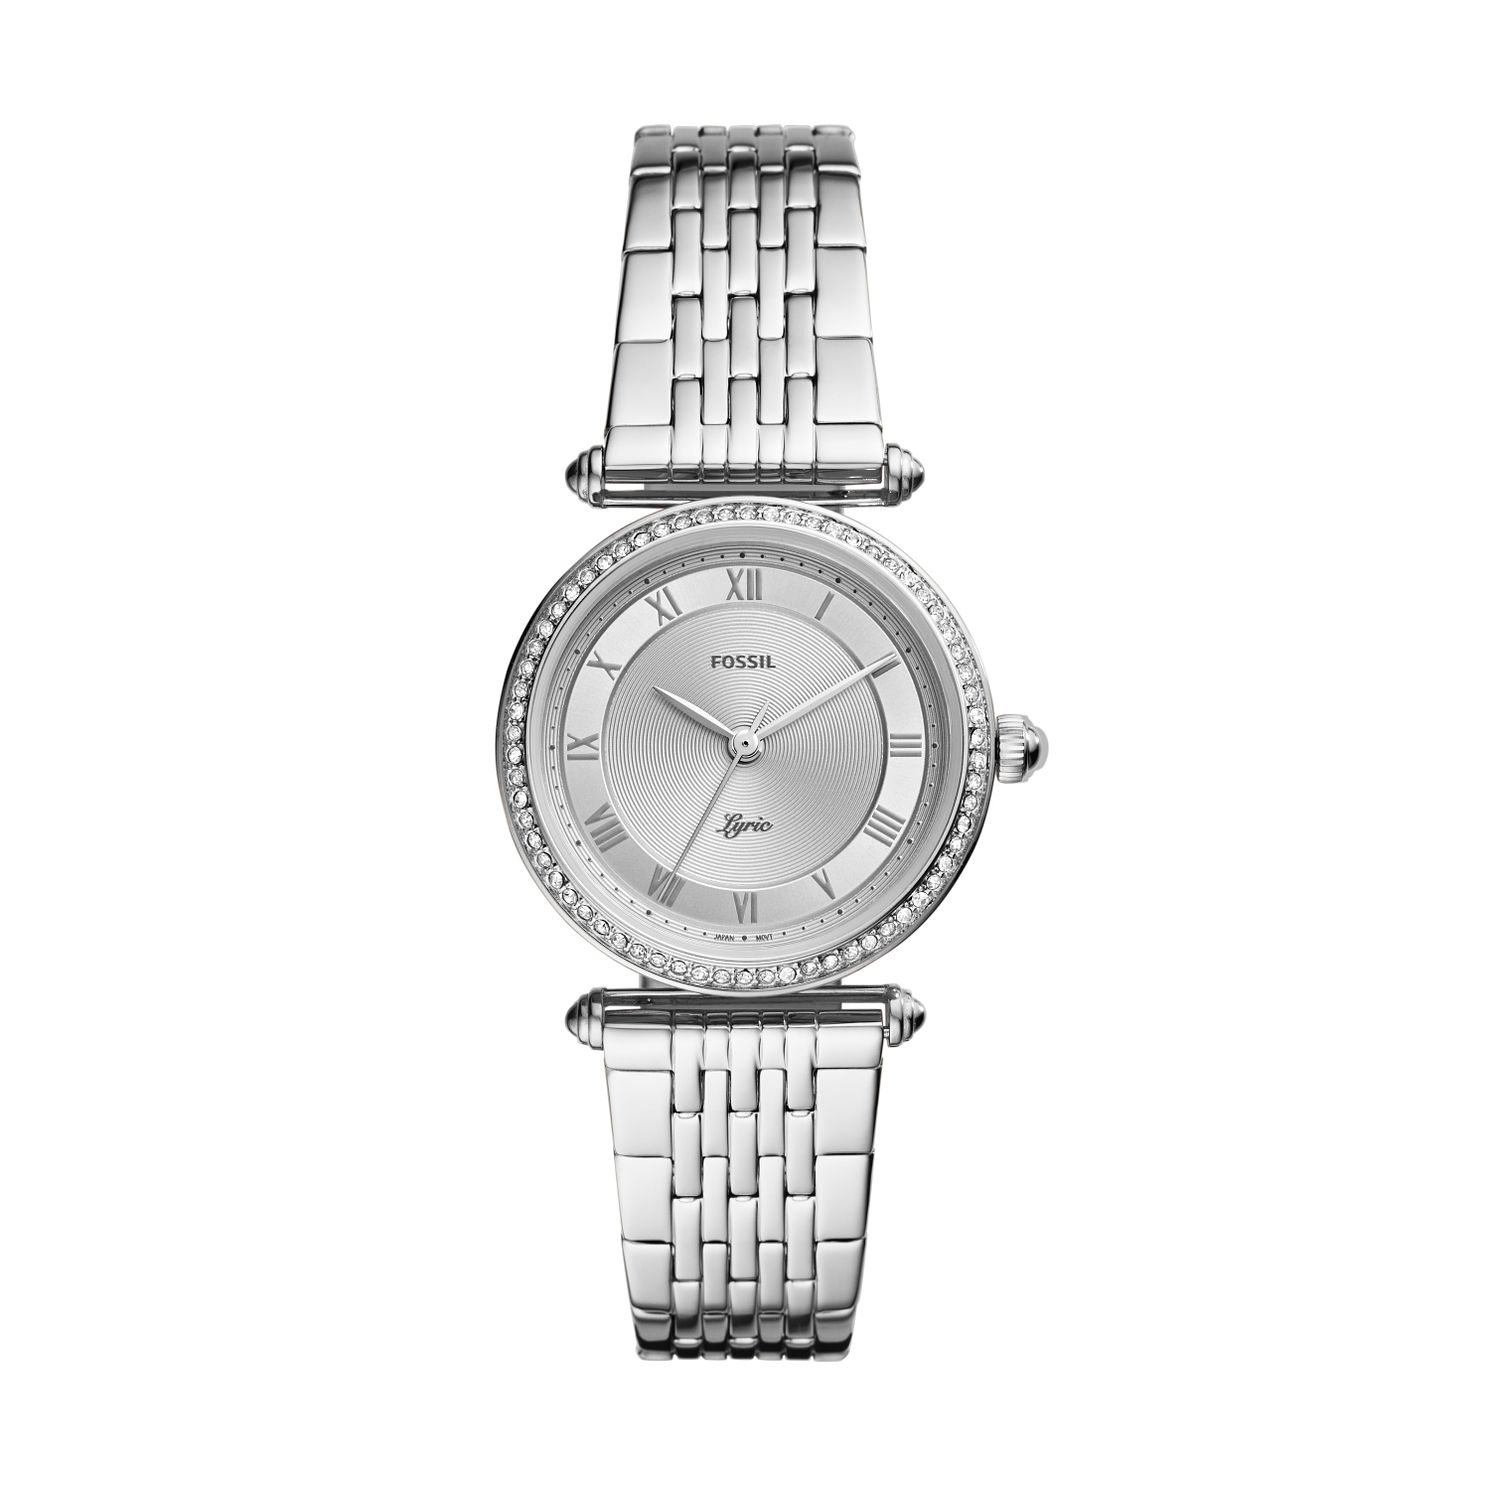 Fossil Ladies' Stainless Steel Bracelet Watch - Product number 4011007